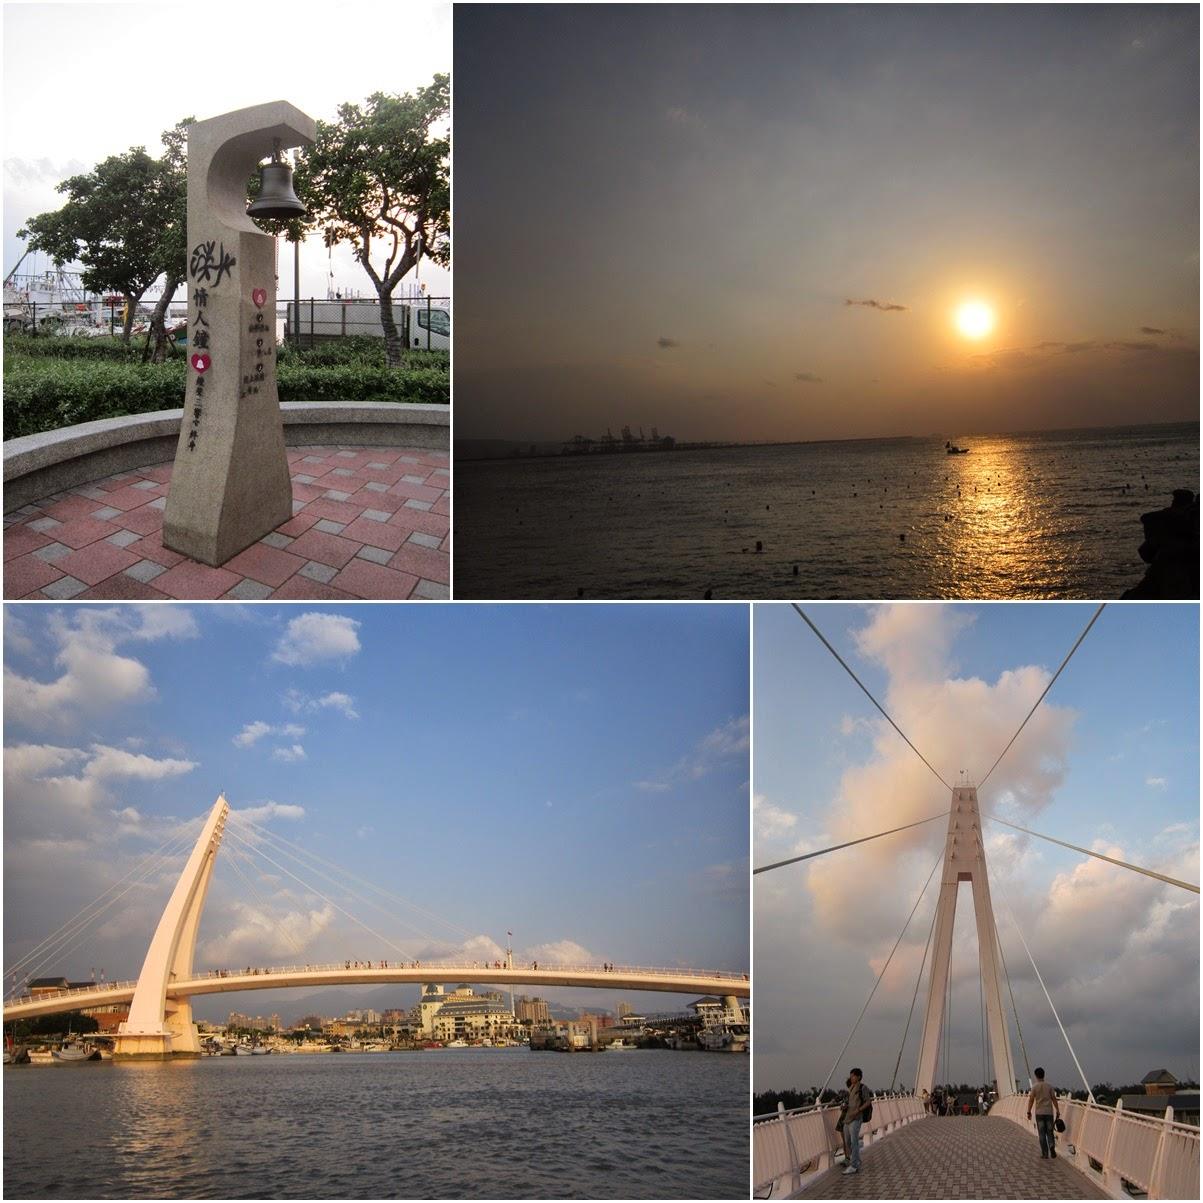 Watching Sunset at Lover Bridge at Tamsui Fisherman's Wharf in Taipei, Taiwan